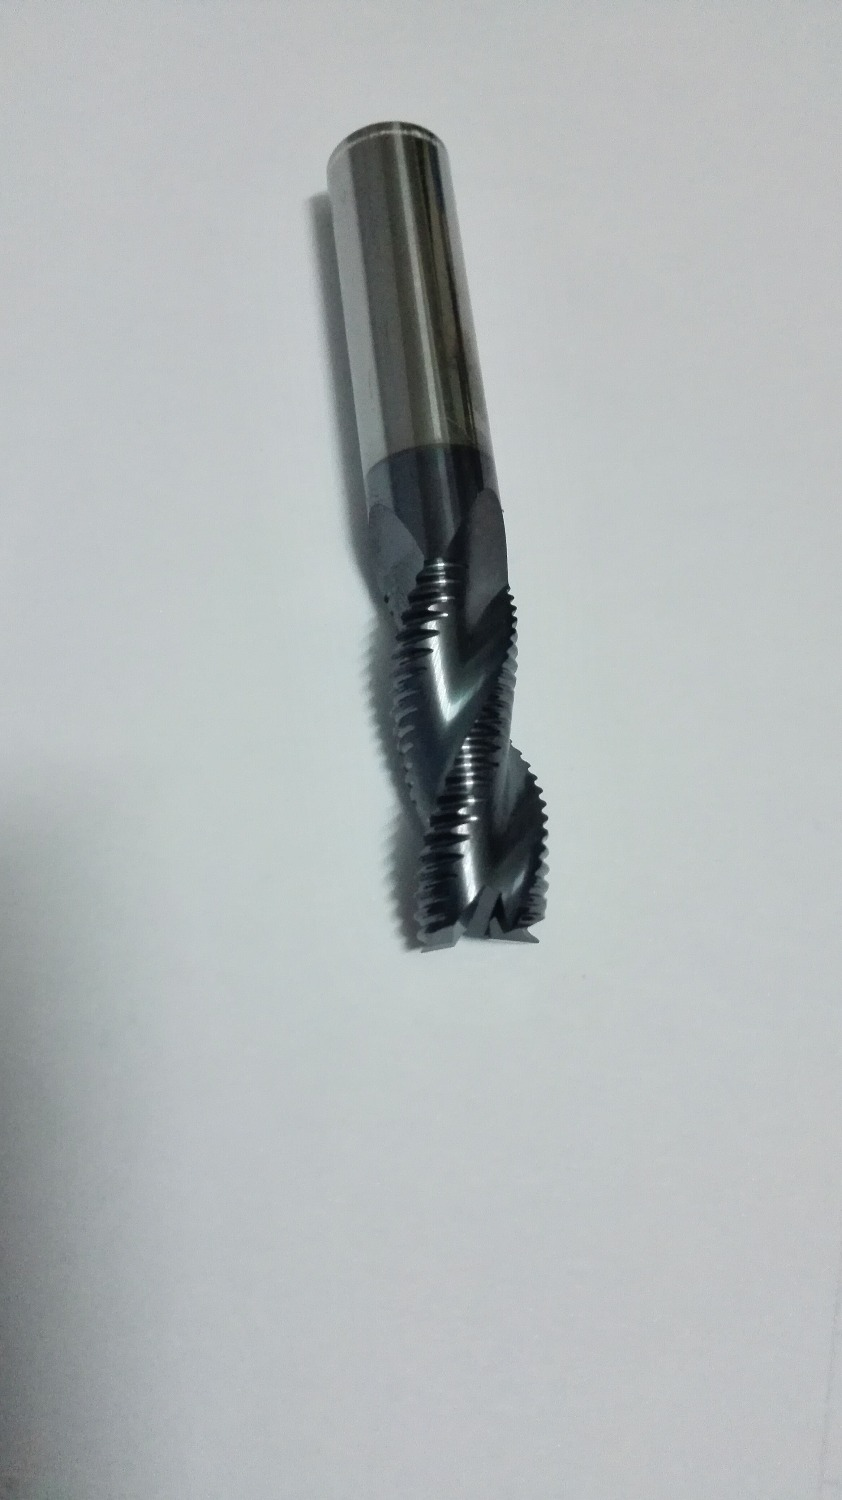 цены 1pc 14mm hrc45 D14*45*D14*135 3Flutes Roughing End Mills Spiral Bit Milling Tools Carbide CNC Endmill Router bits